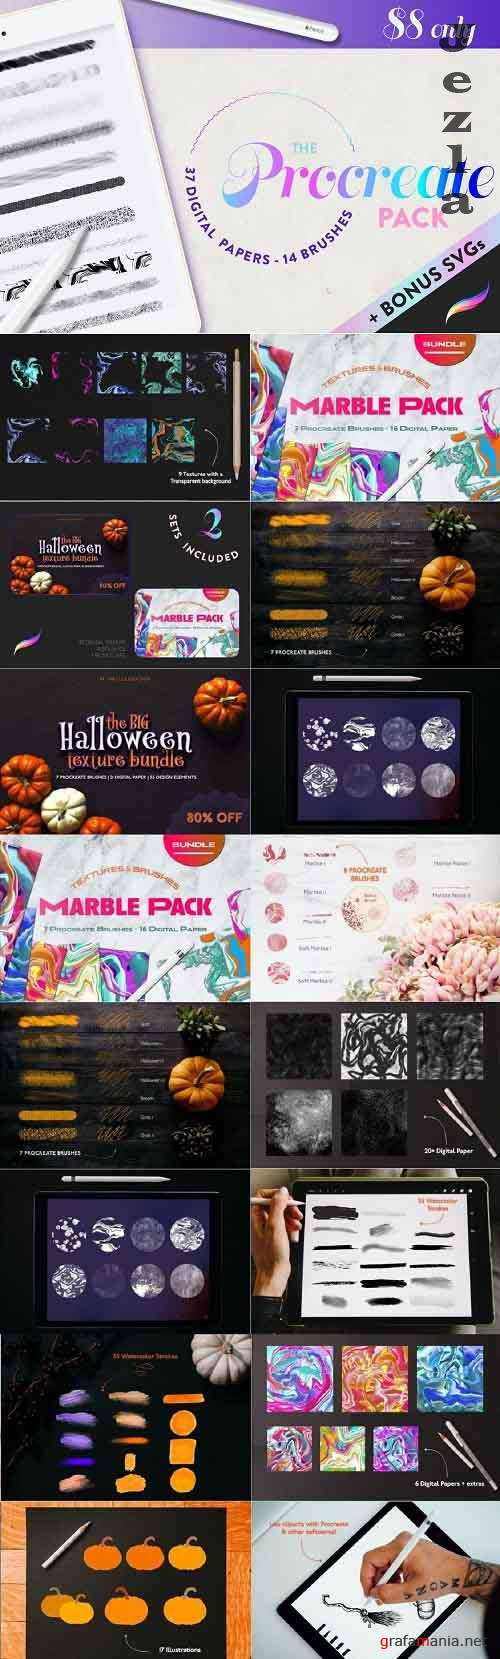 Procreate Bundle Pack Texture - 5741123